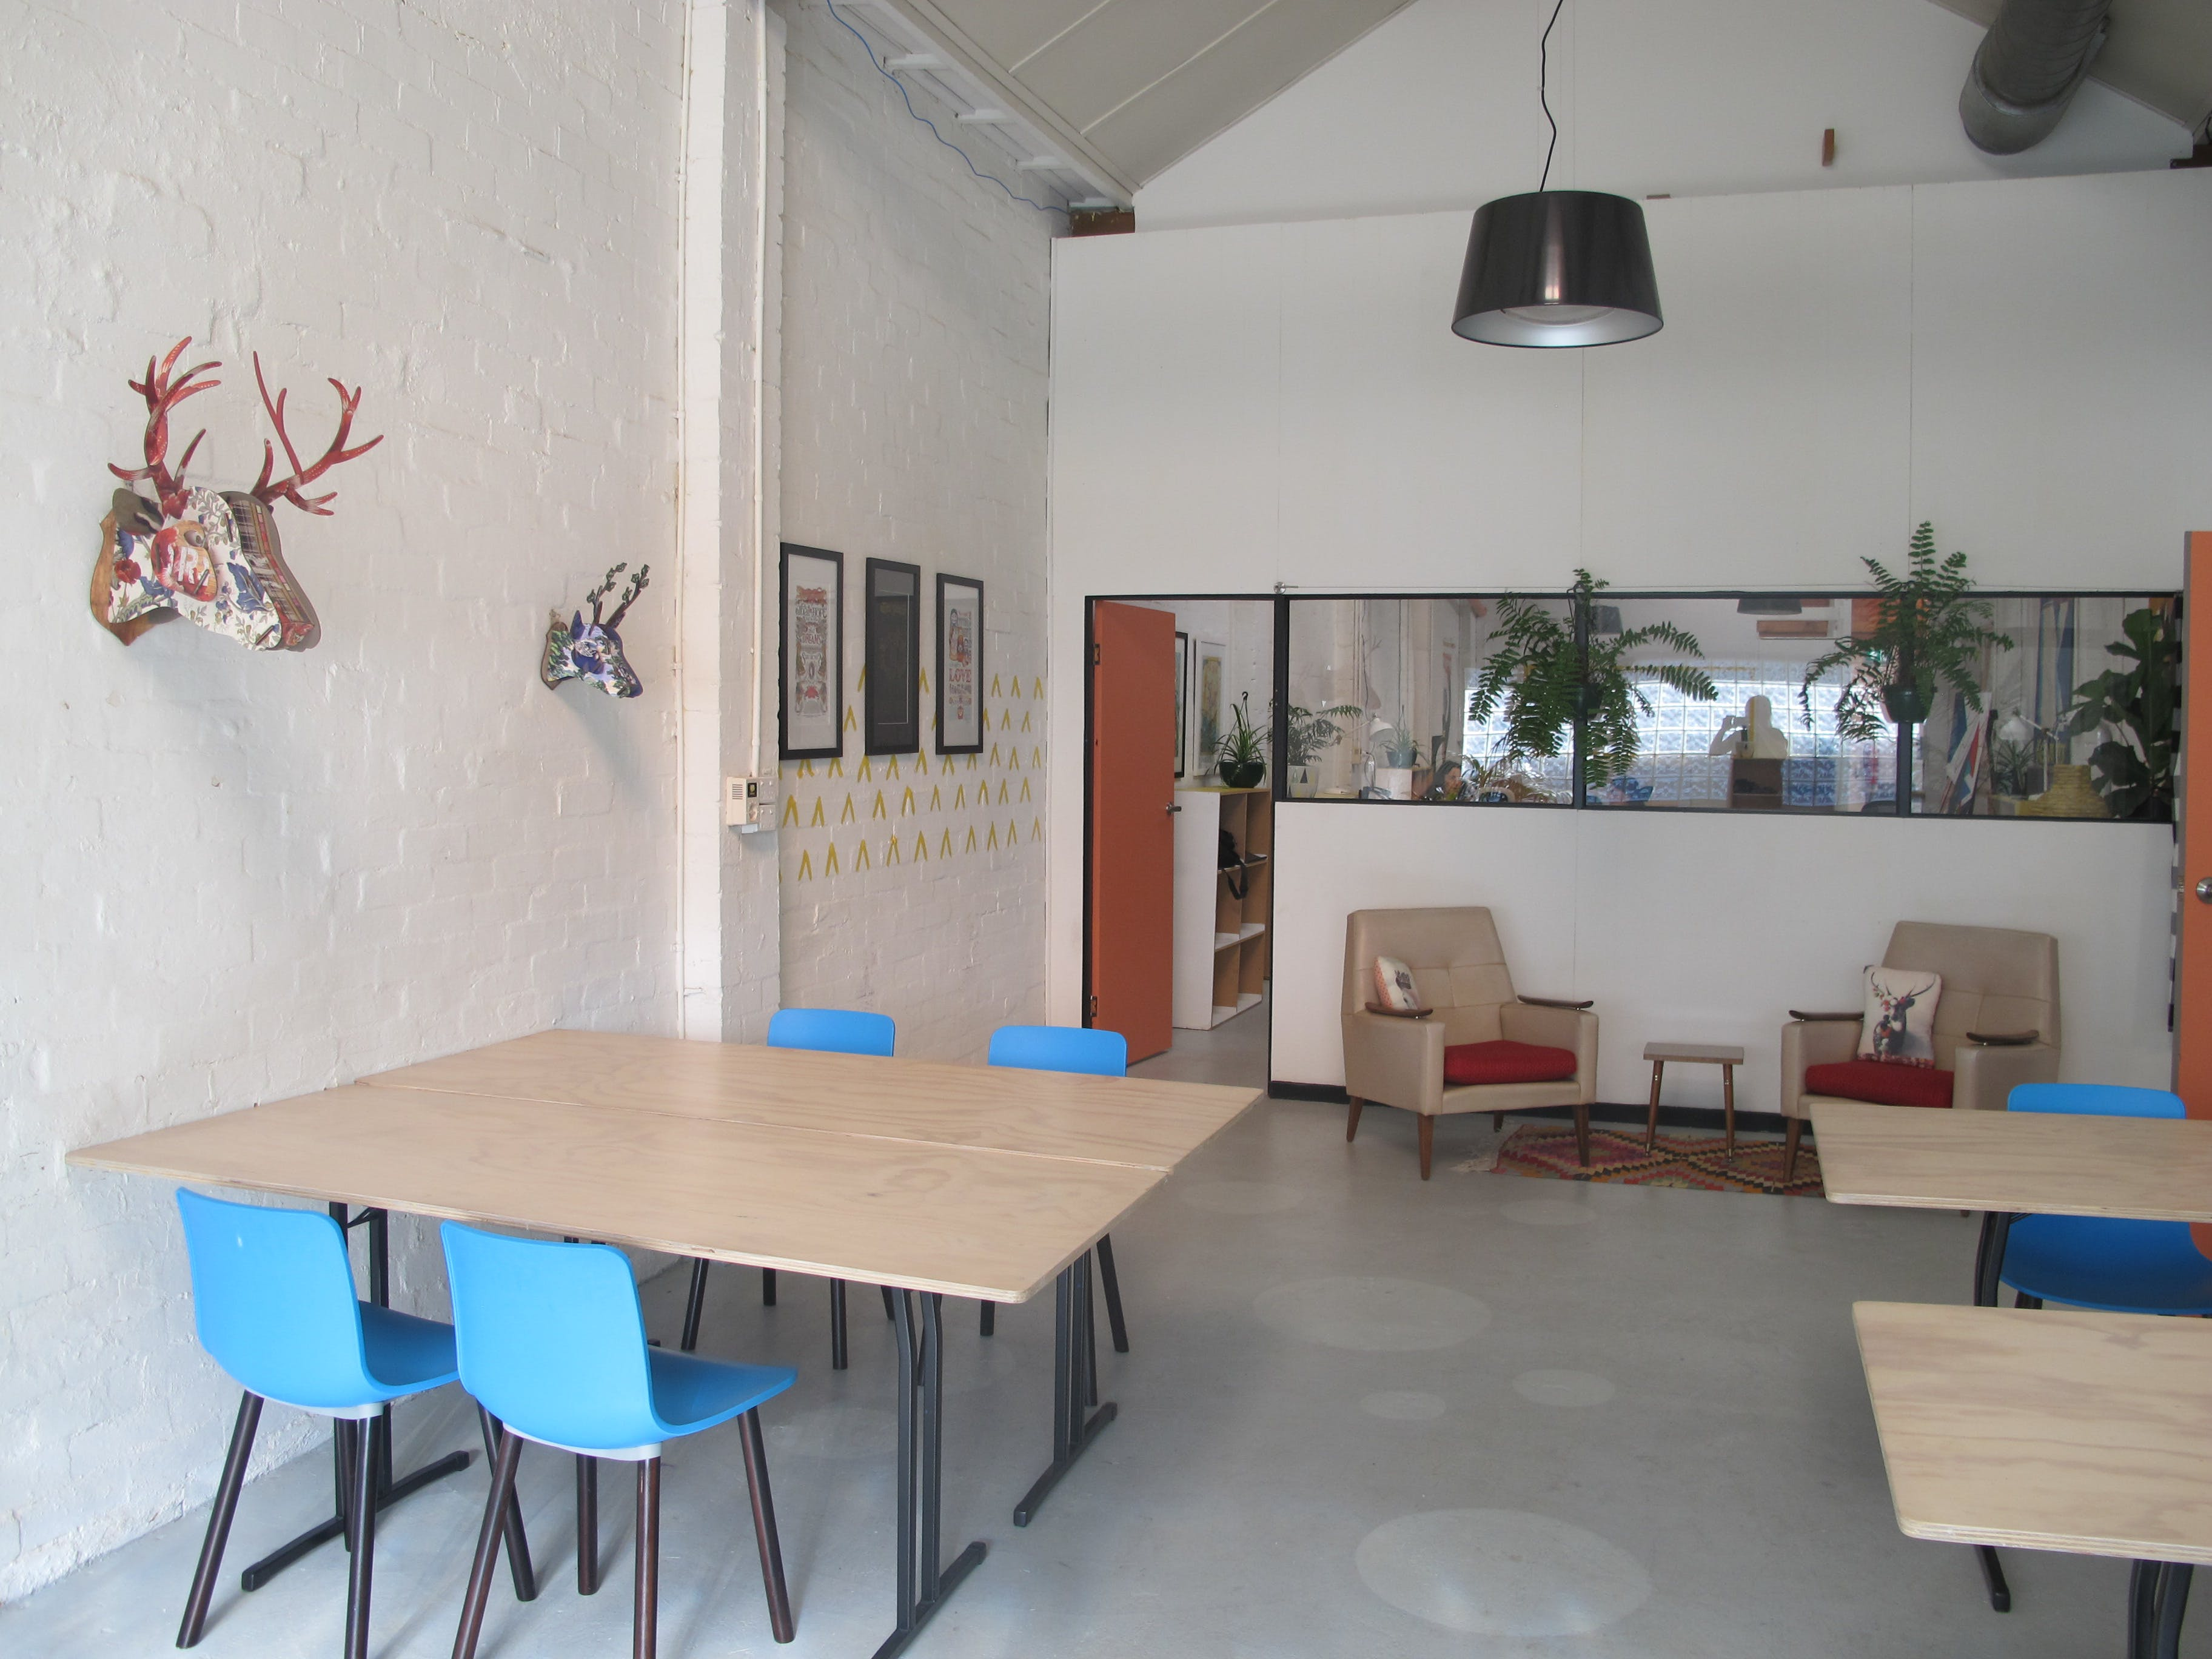 Workshop at The Cowork Co, image 1